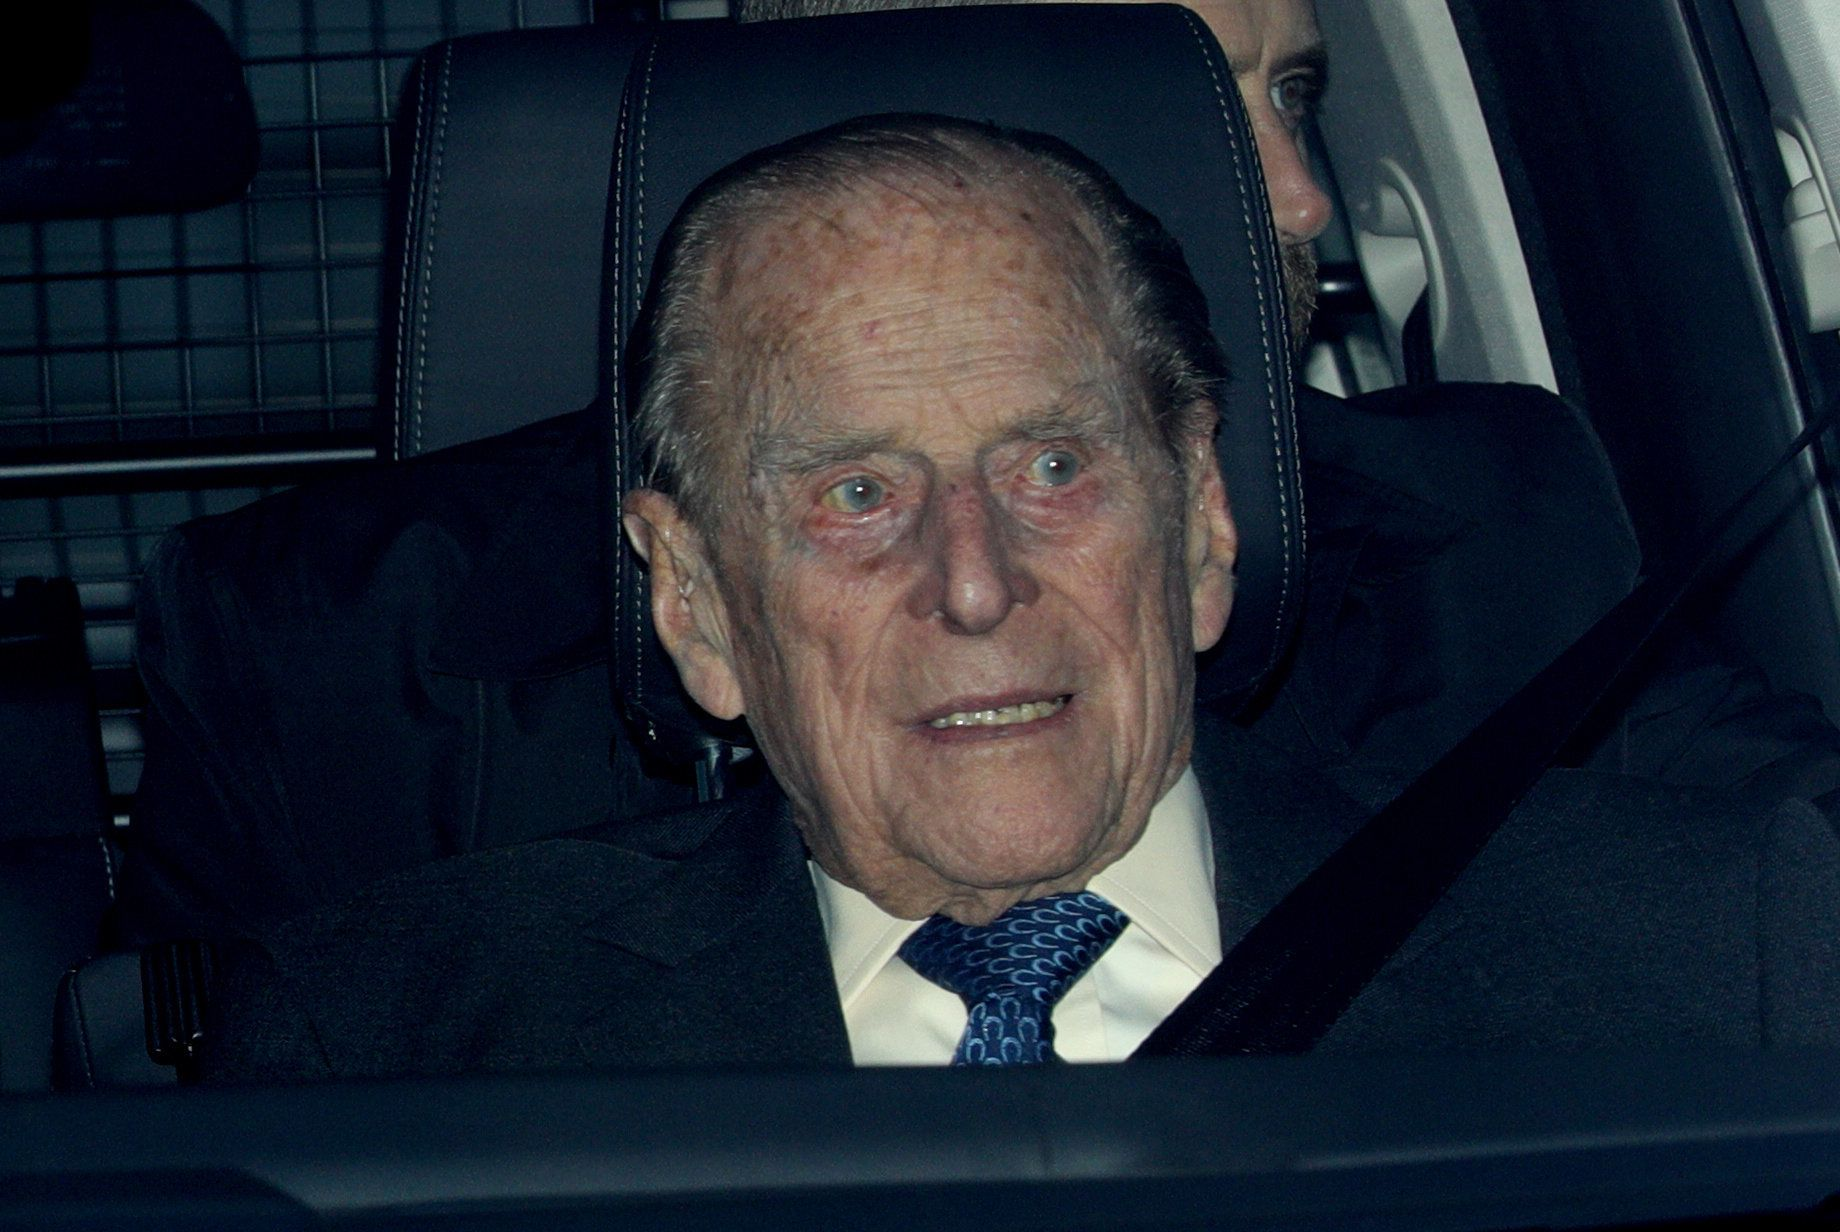 Prince Philip, Duke of Edinburgh, Involved In Car